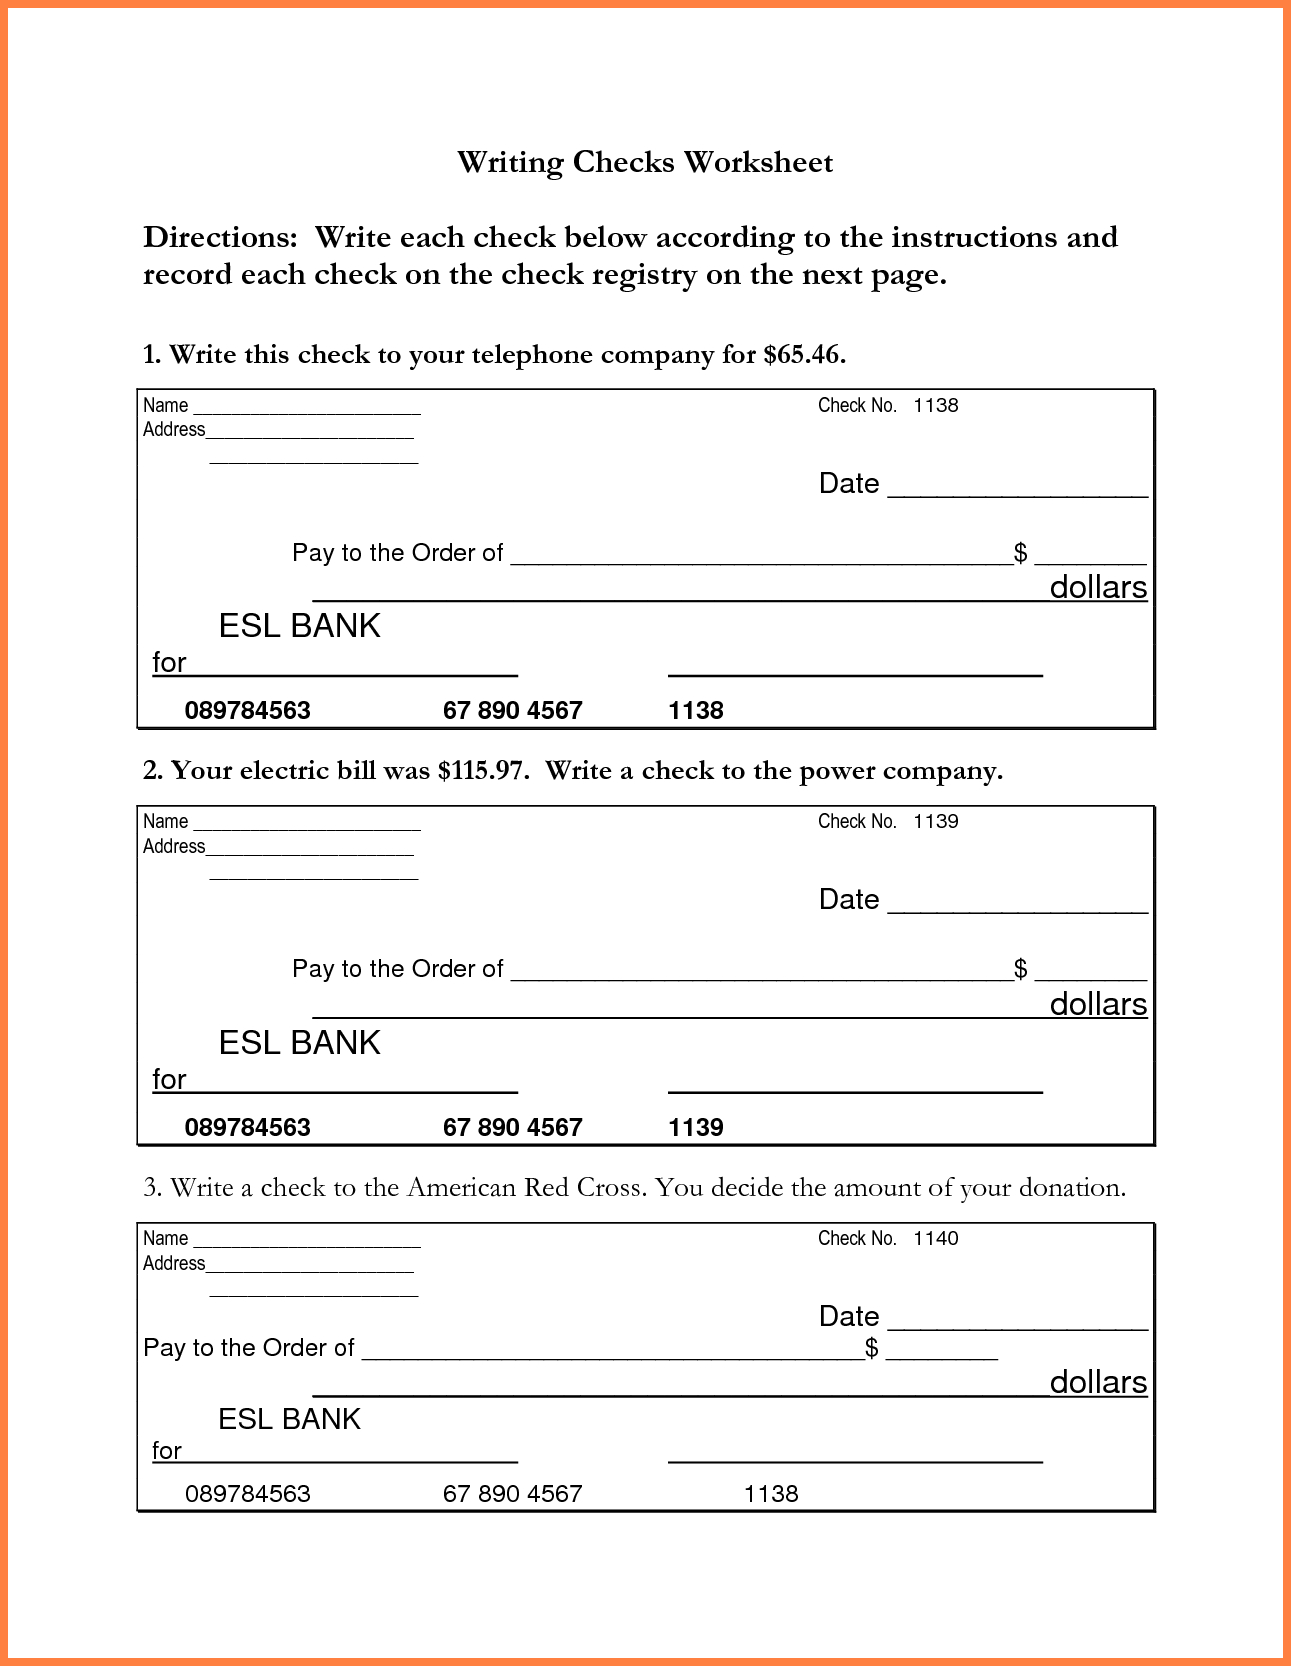 Checking Account Worksheets For Students